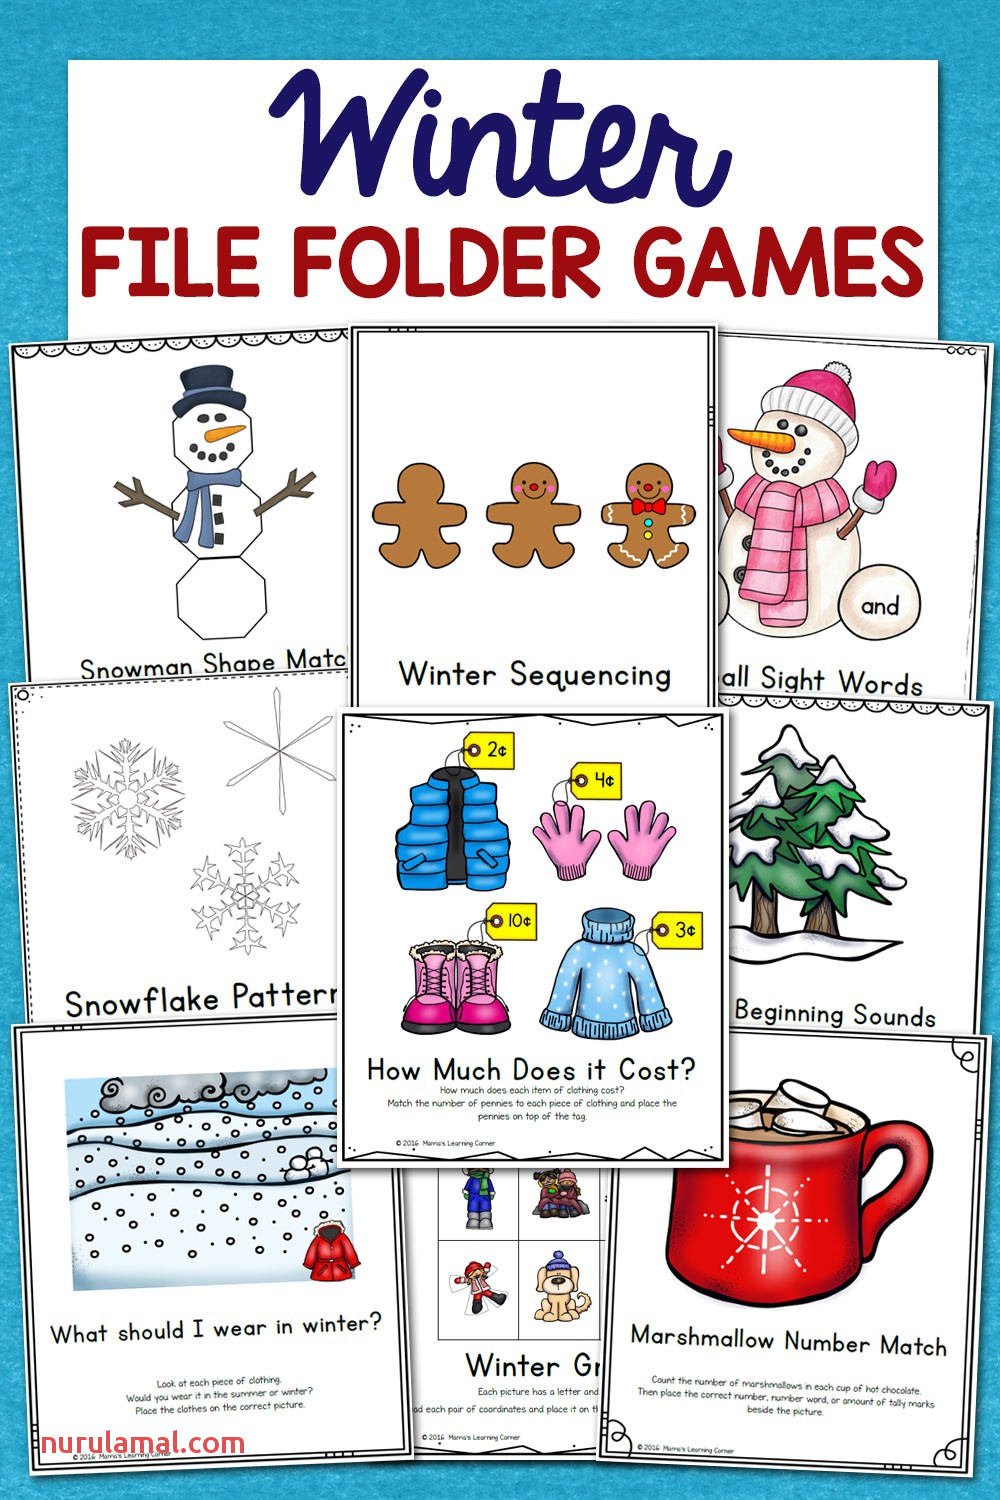 Winter File Folder Games 10 Learning Activities Mamas